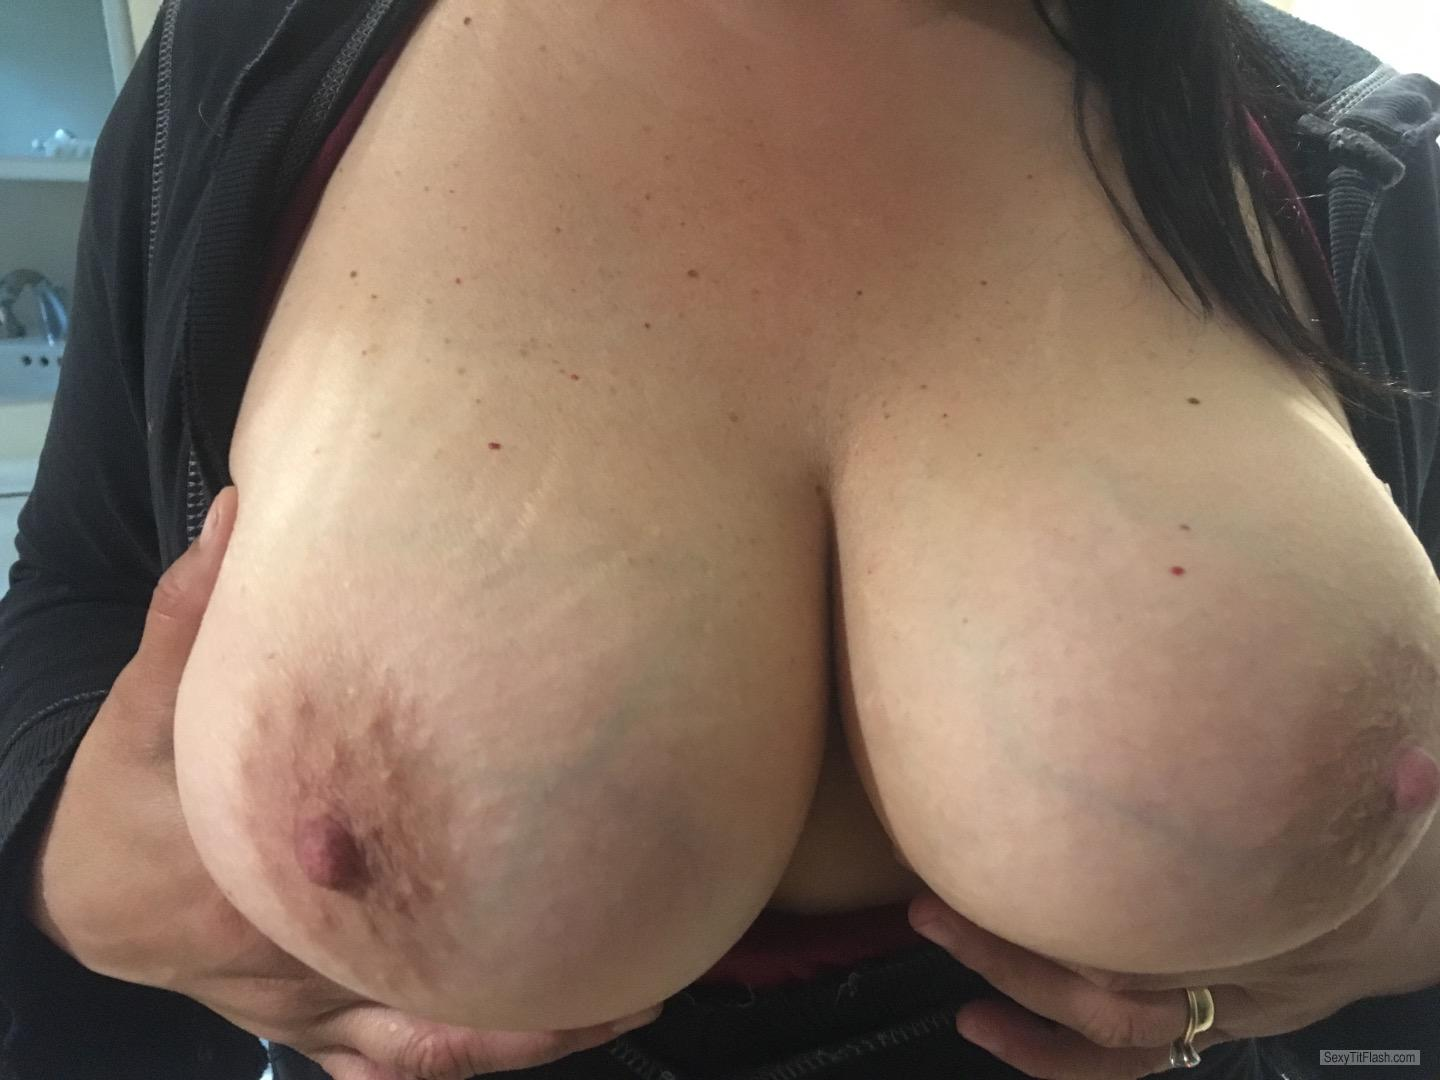 Tit Flash: My Very Small Tits - Topless Shan from United States